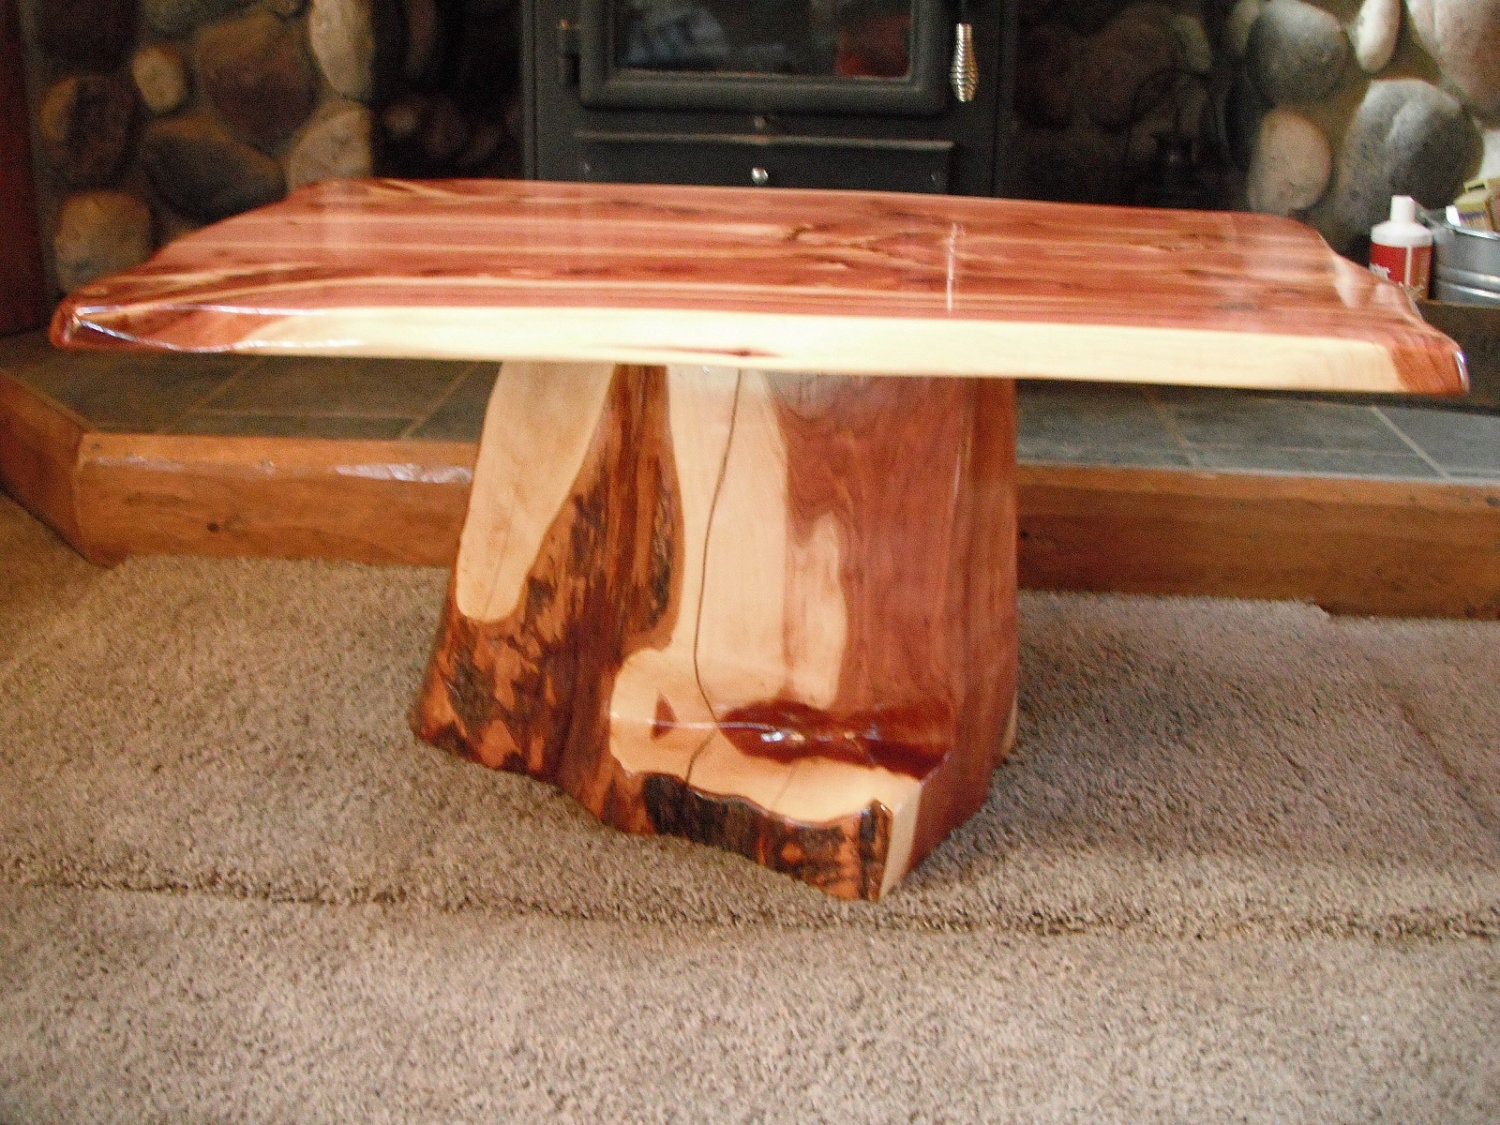 Western red cedar table top western red cedar live edge table top -  Zoom